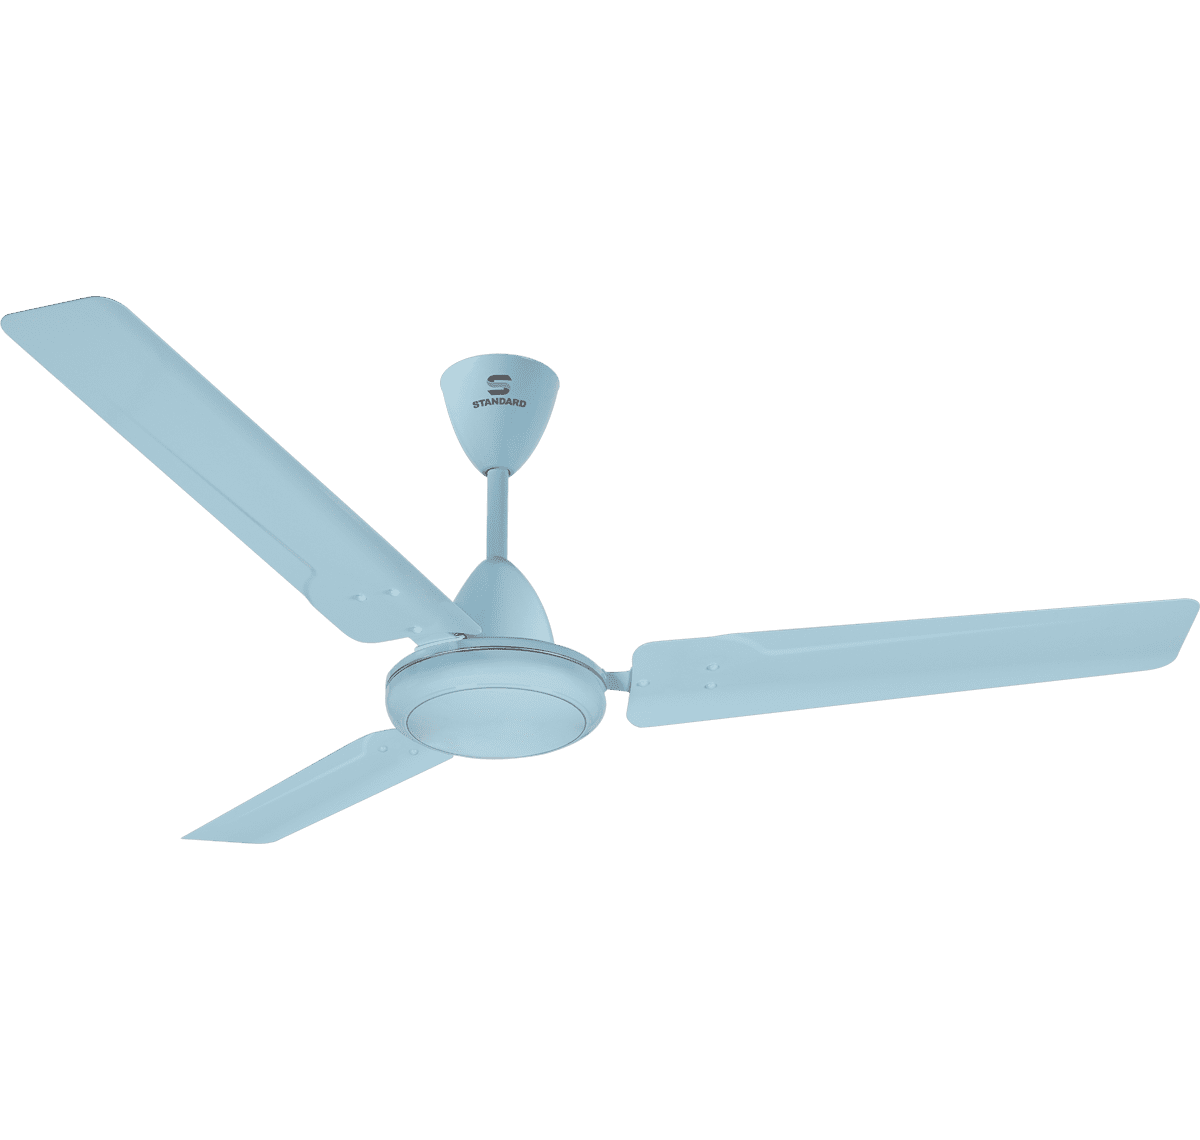 Best Ceiling Fans India Small Ceiling Fans Online Price